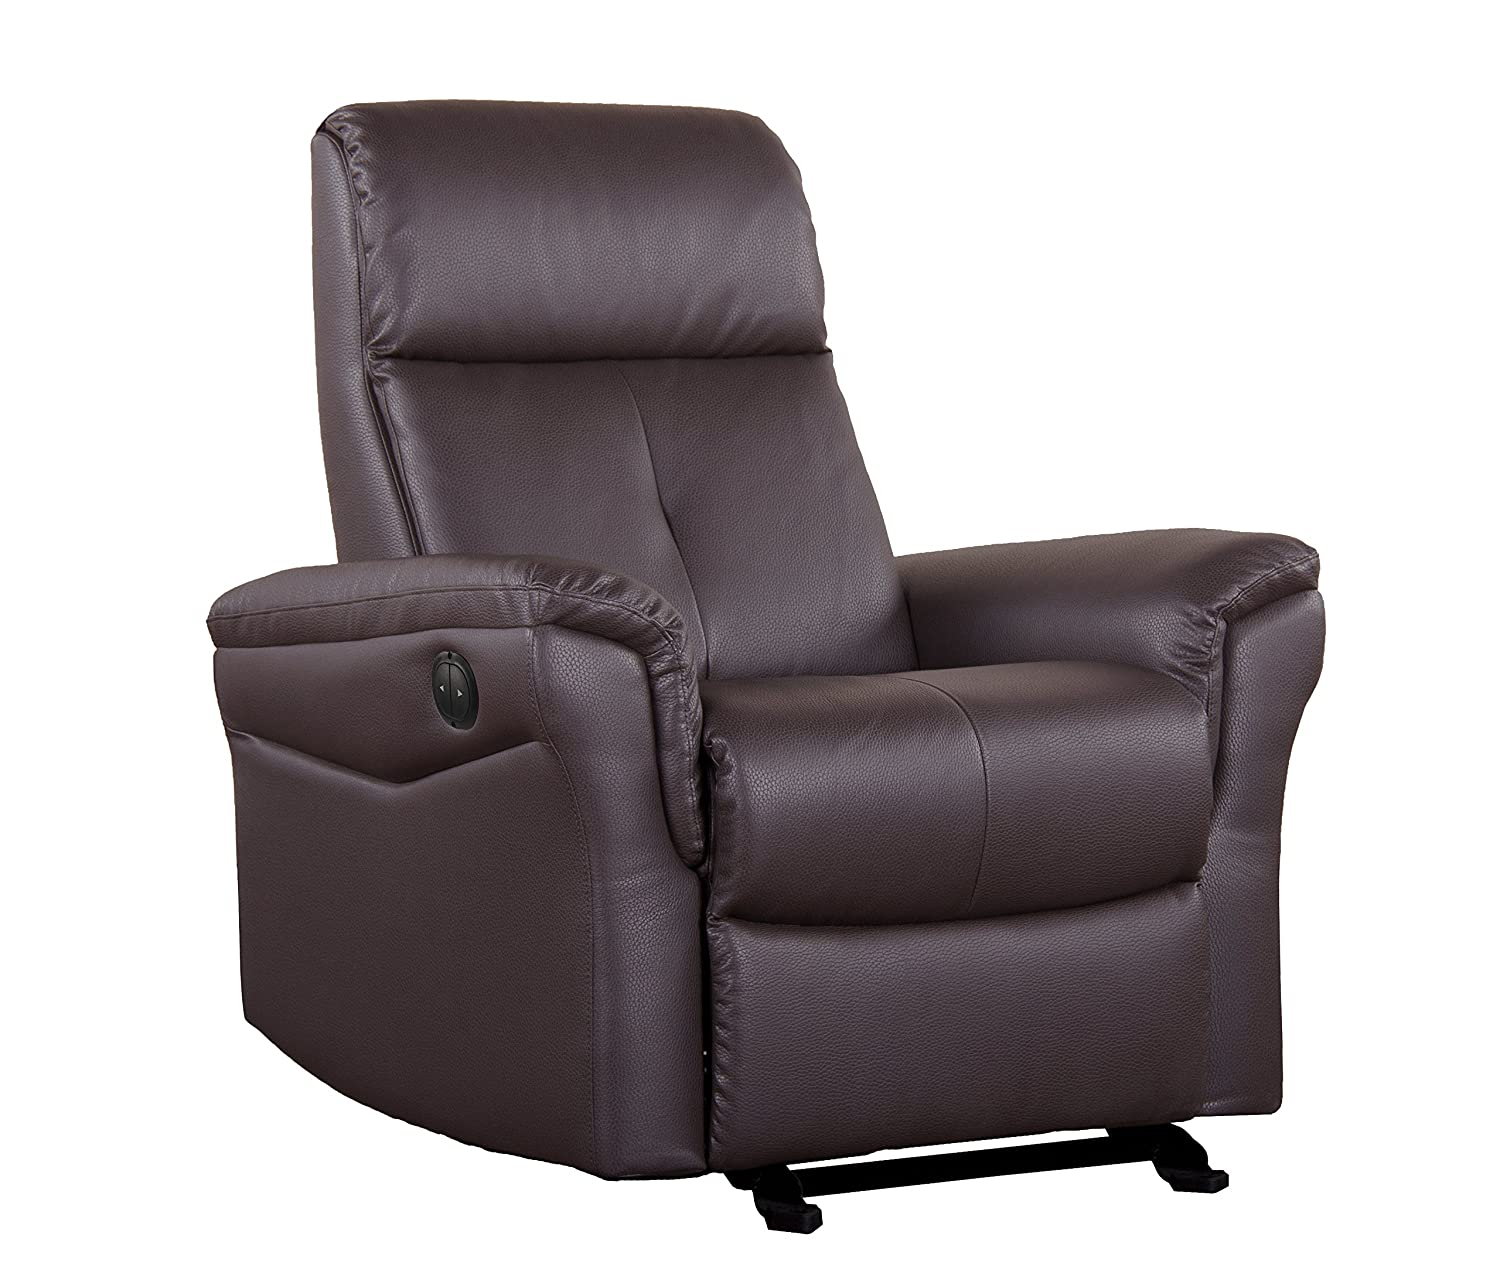 Shermag Glider with Push-Button Recline - Brown Bonded Leather